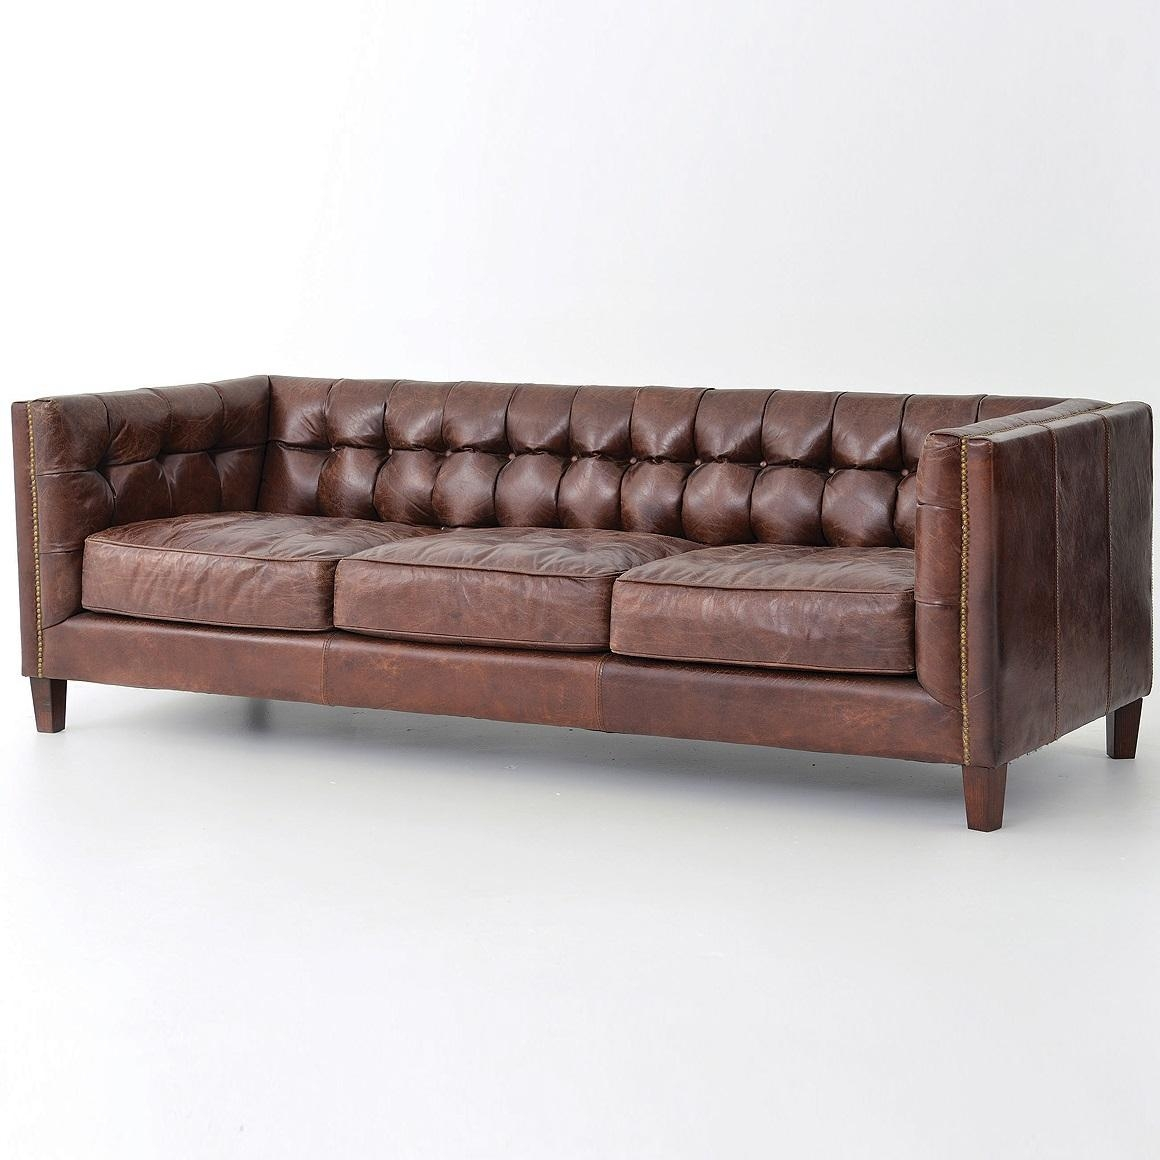 Sofas Center : Archaicawful Leather Tufted Sofa Photos Design Throughout Brown Leather Tufted Sofas (View 17 of 20)